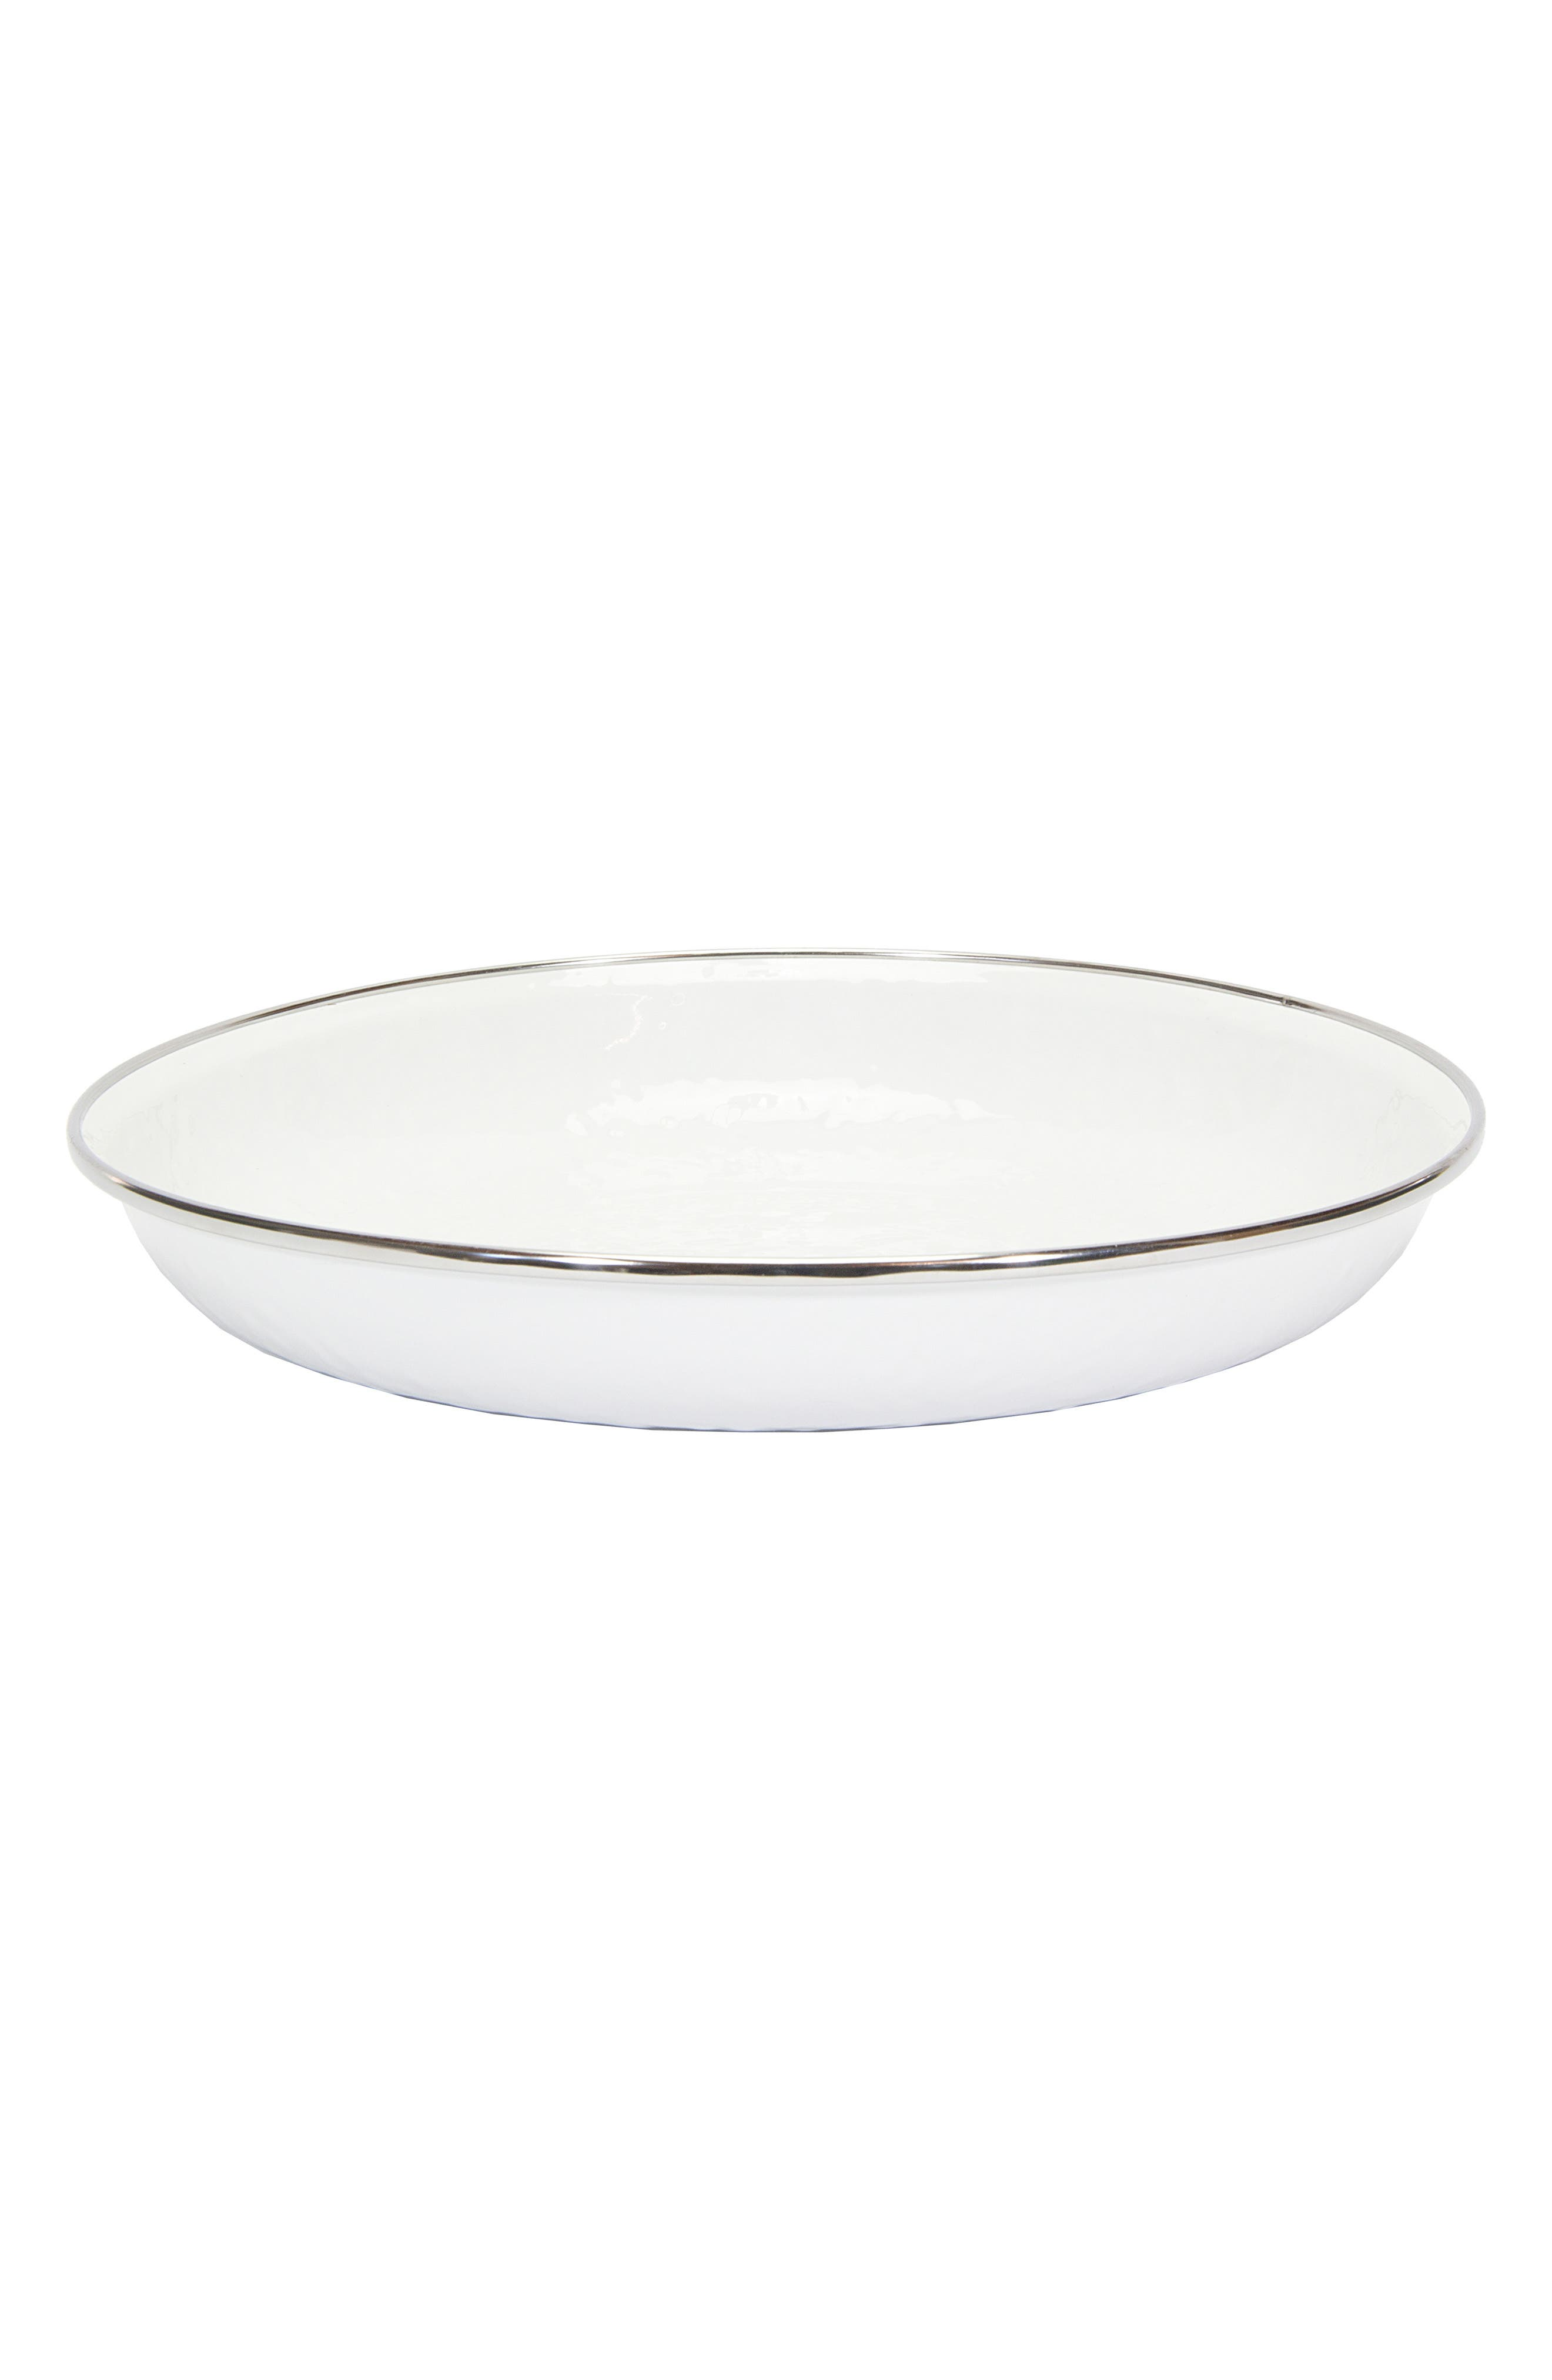 Pasta Plate,                             Main thumbnail 1, color,                             SOLID WHITE